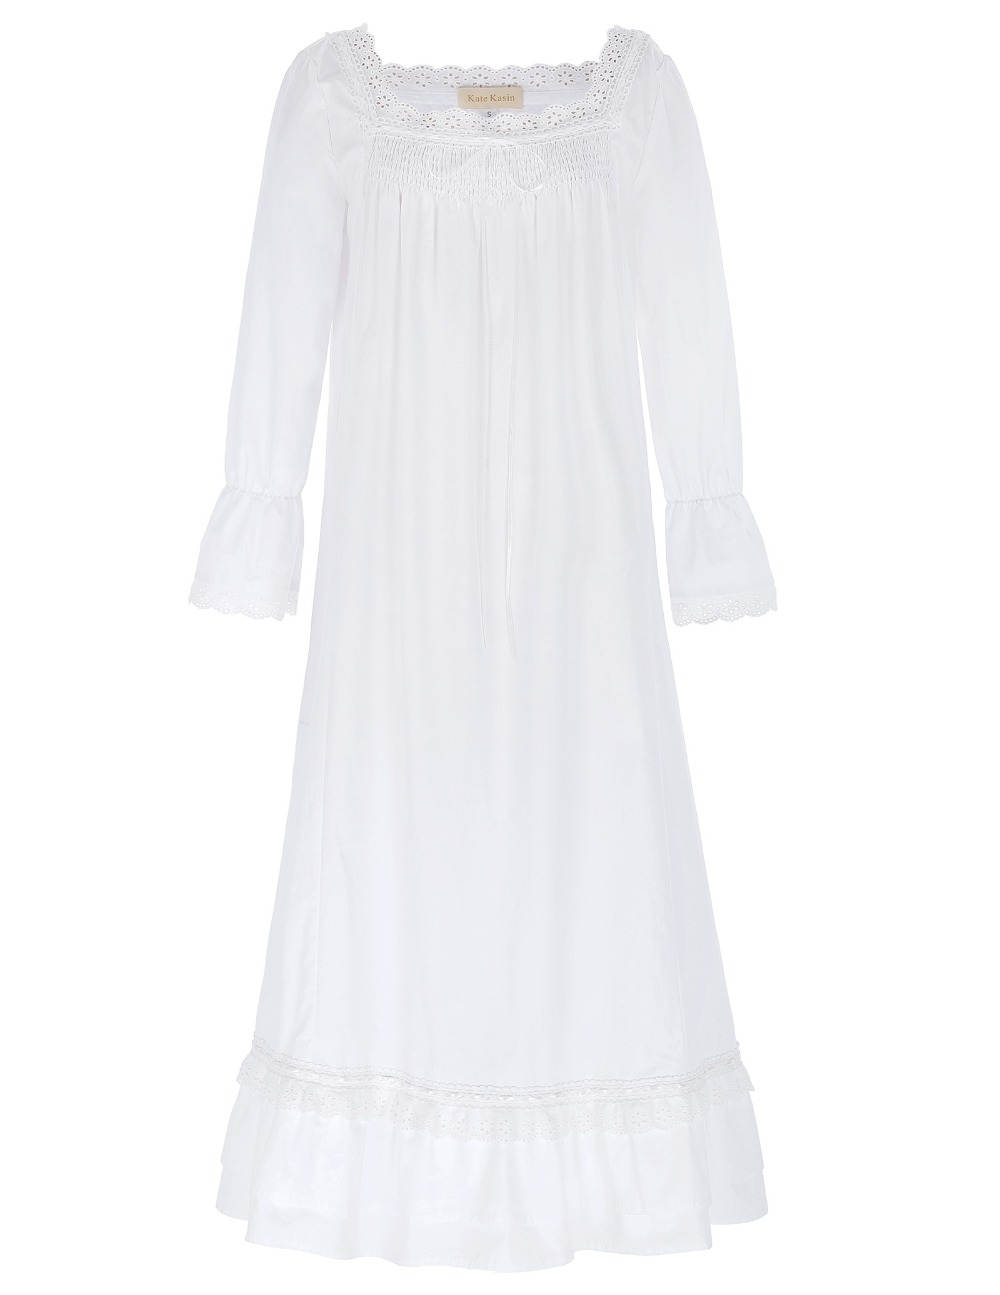 victorian nightgowns promotion